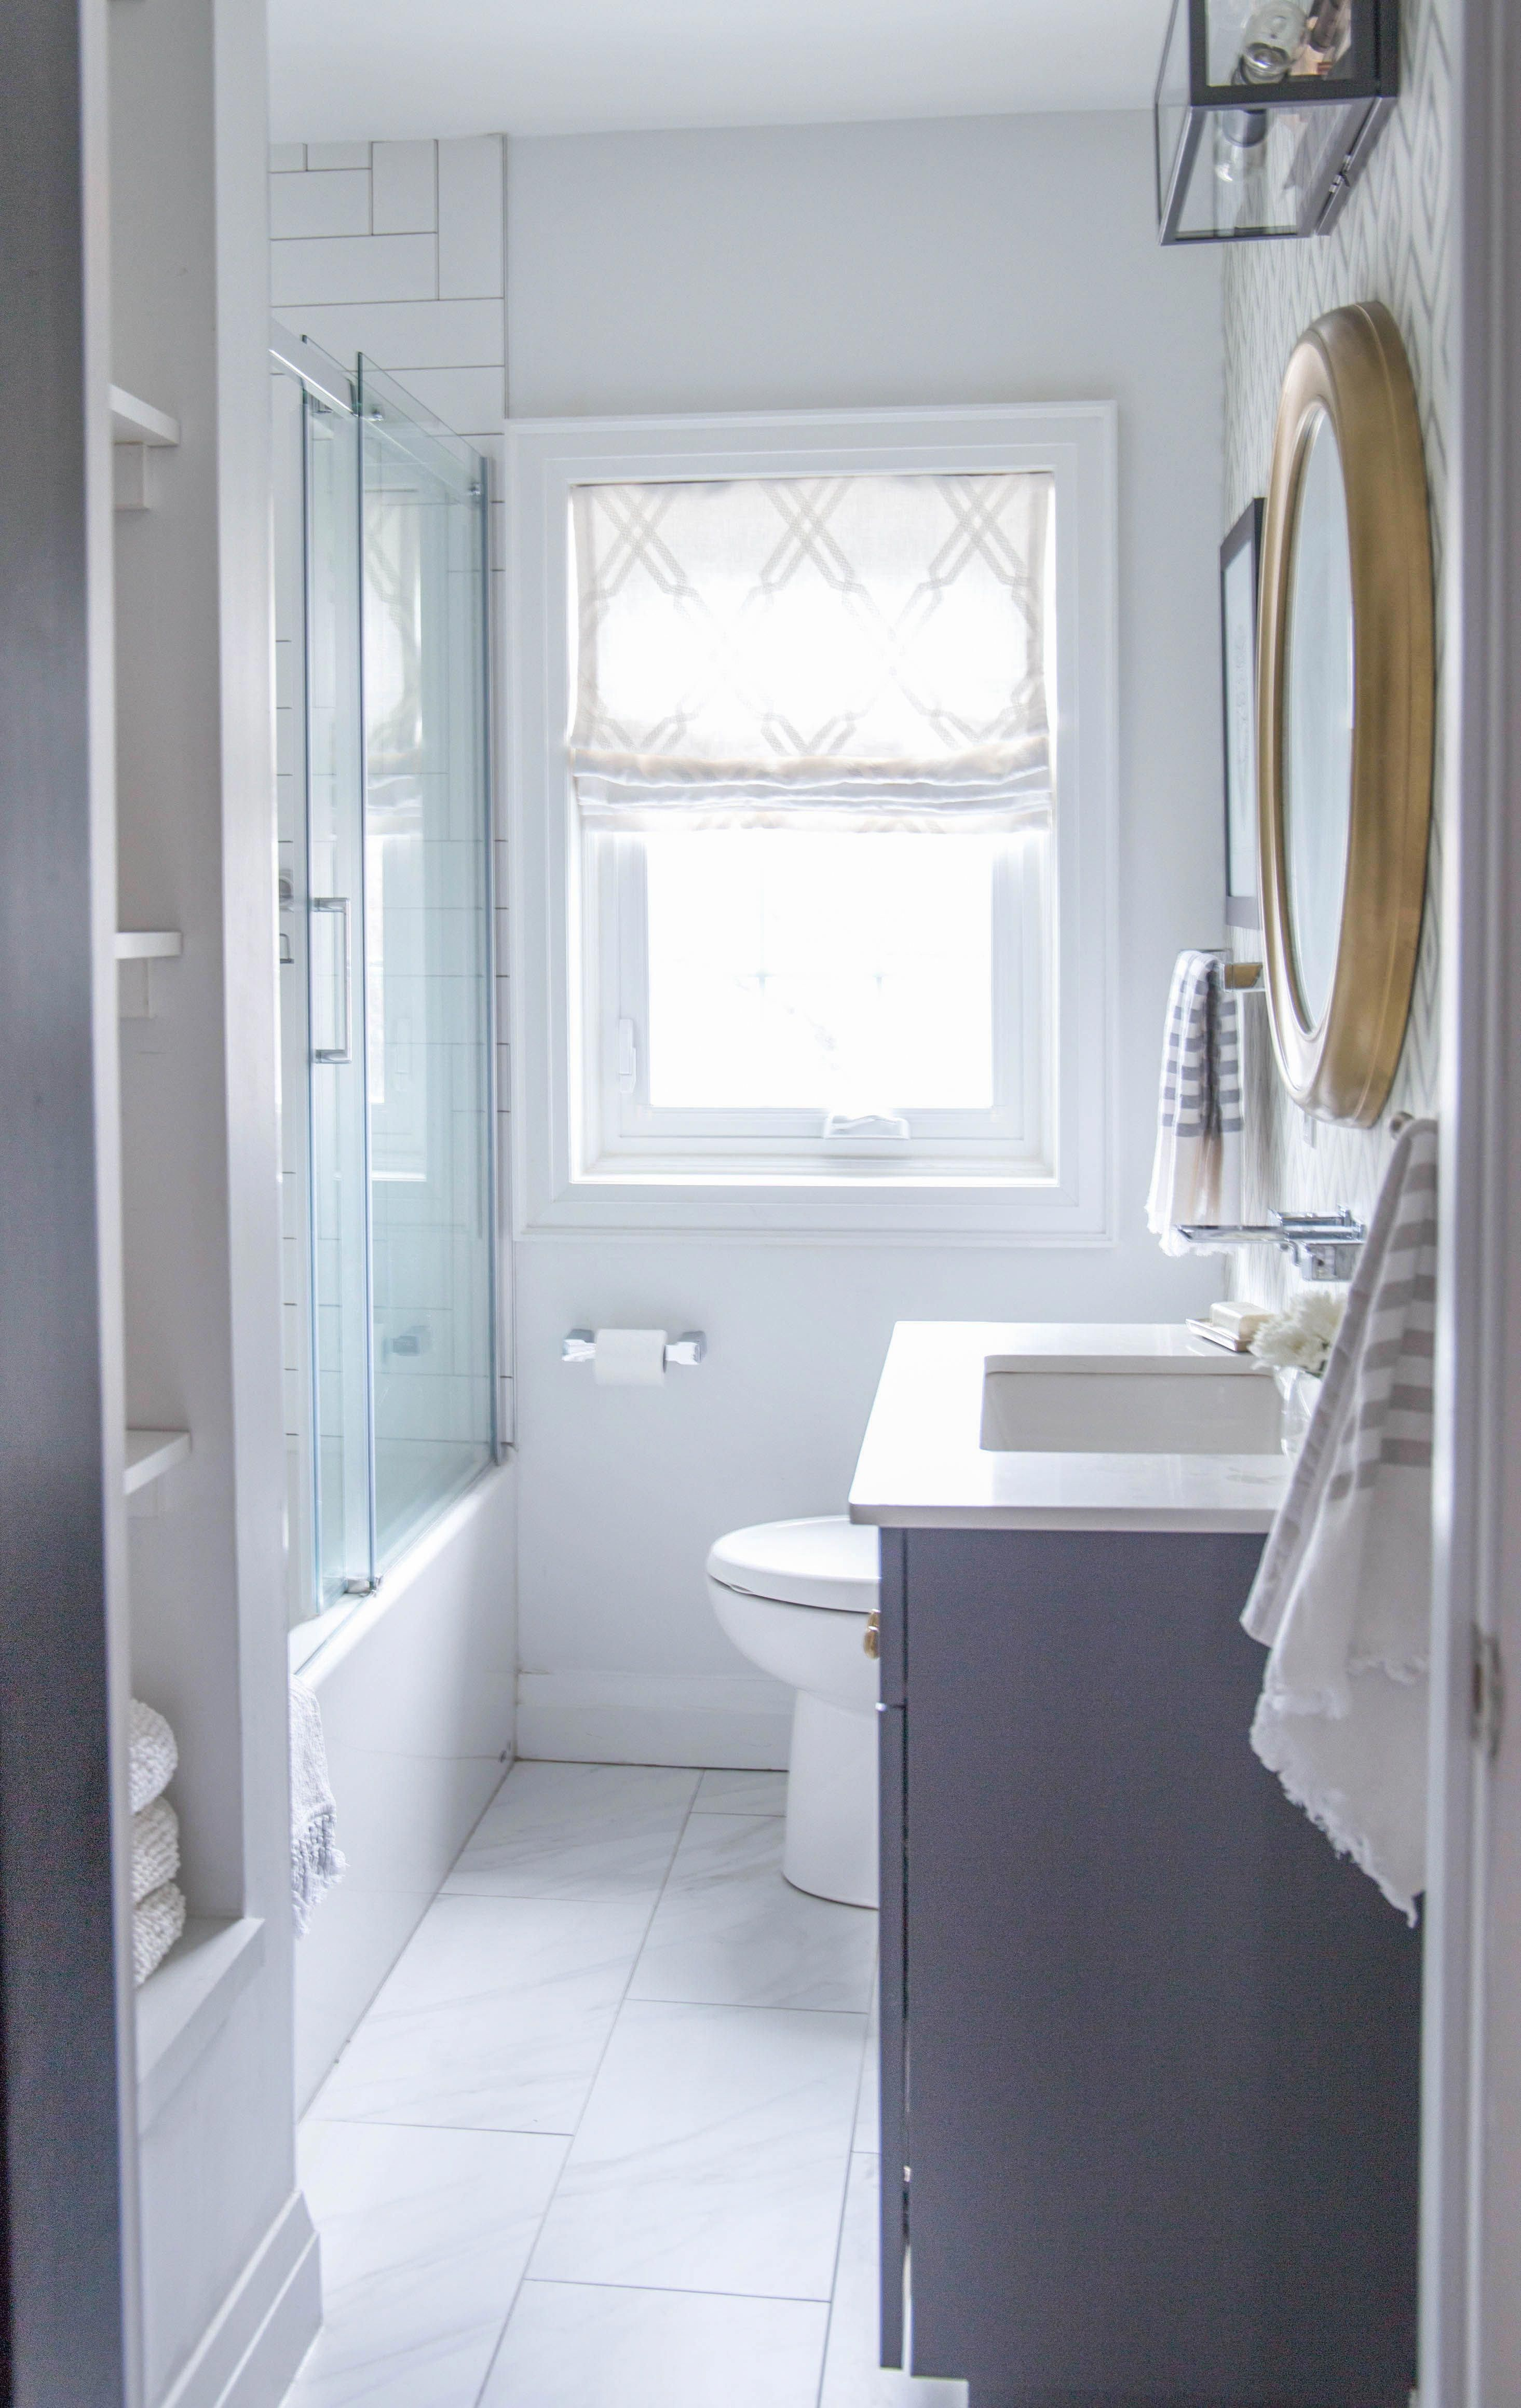 Advice Tactics Together With Quick Guide When It Comes To Obtaining The Very Best End Result Bathrooms Remodel Small Bathroom Remodel Bathroom Remodel Master